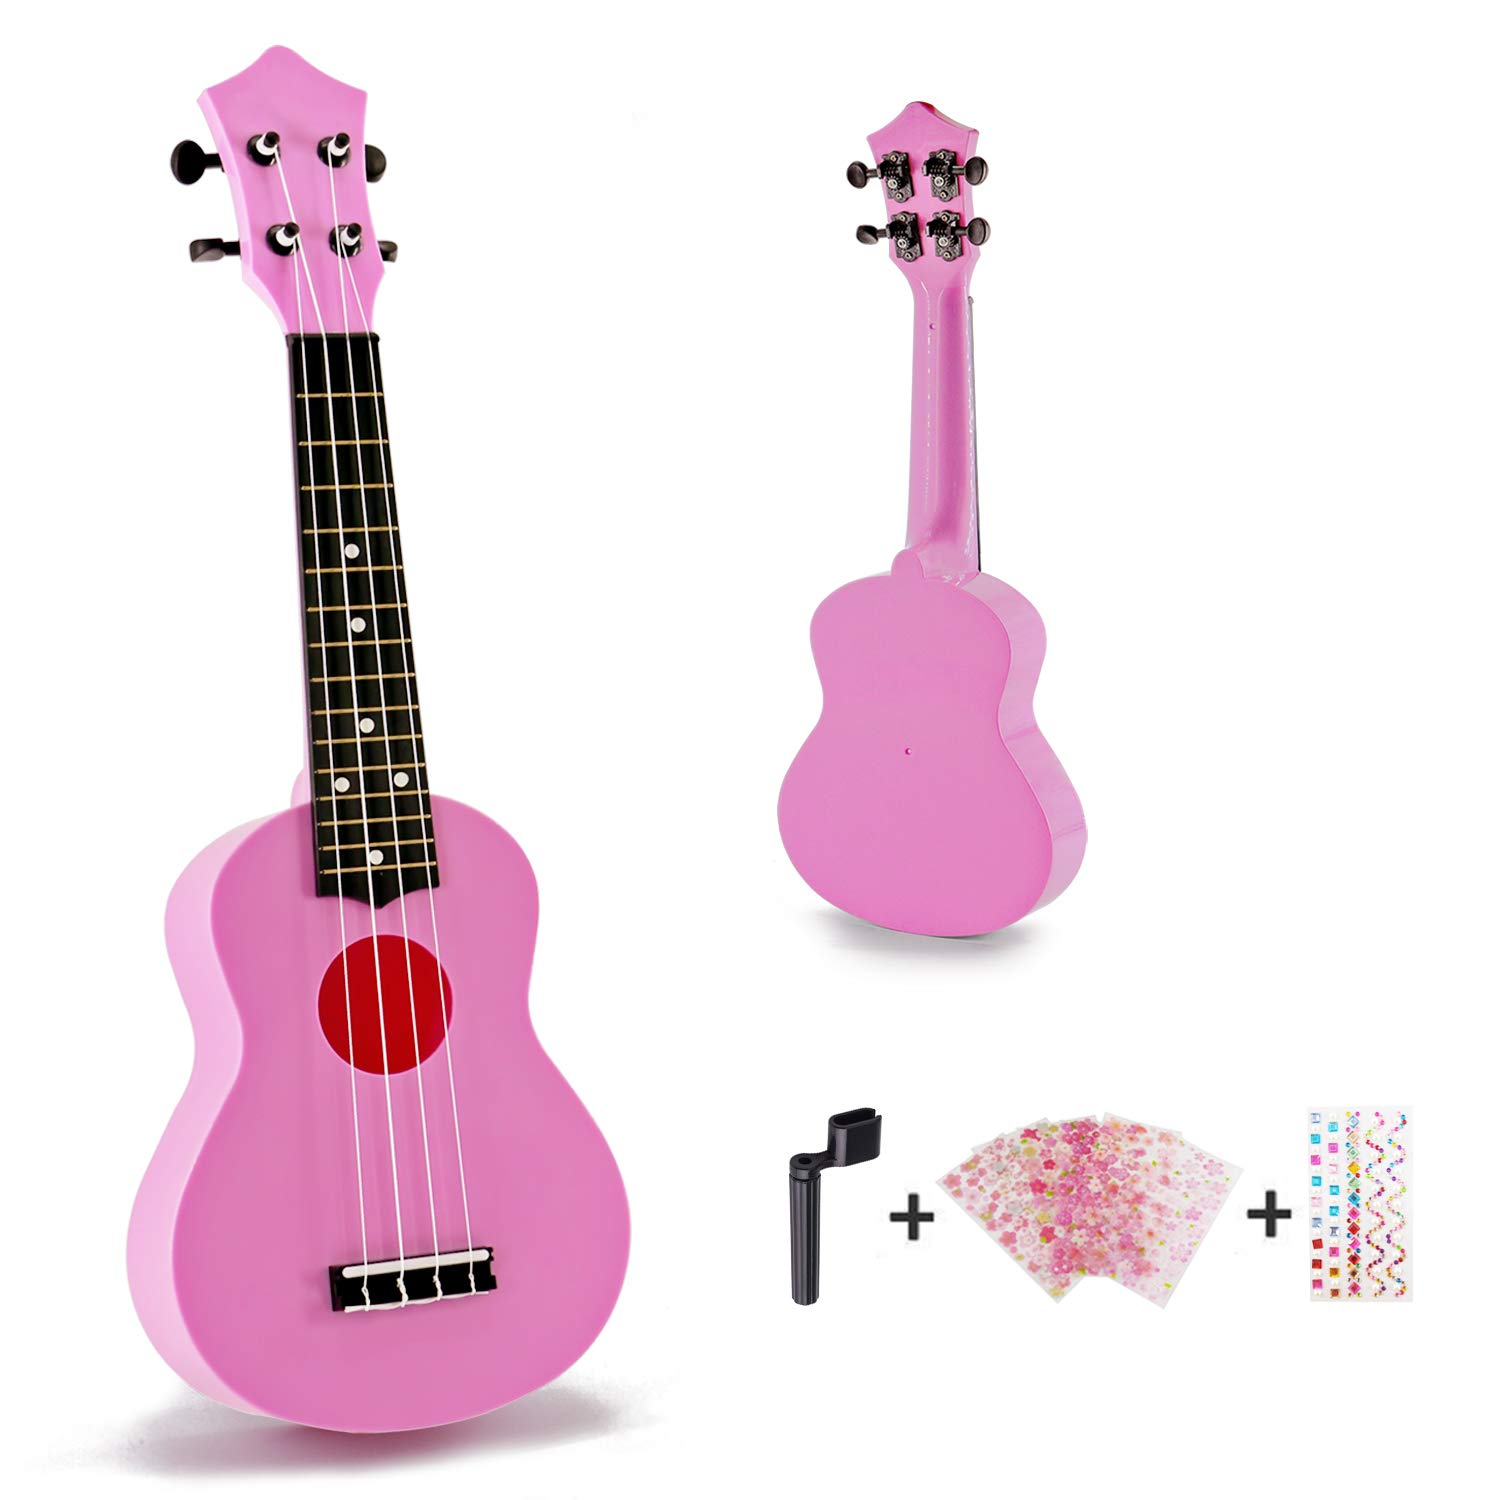 Toy Ukulele Soprano 21 inch Hawaiian Guitar Plastic Ukulele for Children Kids Gift Macaron Color Style-Pink M Y Fly Young